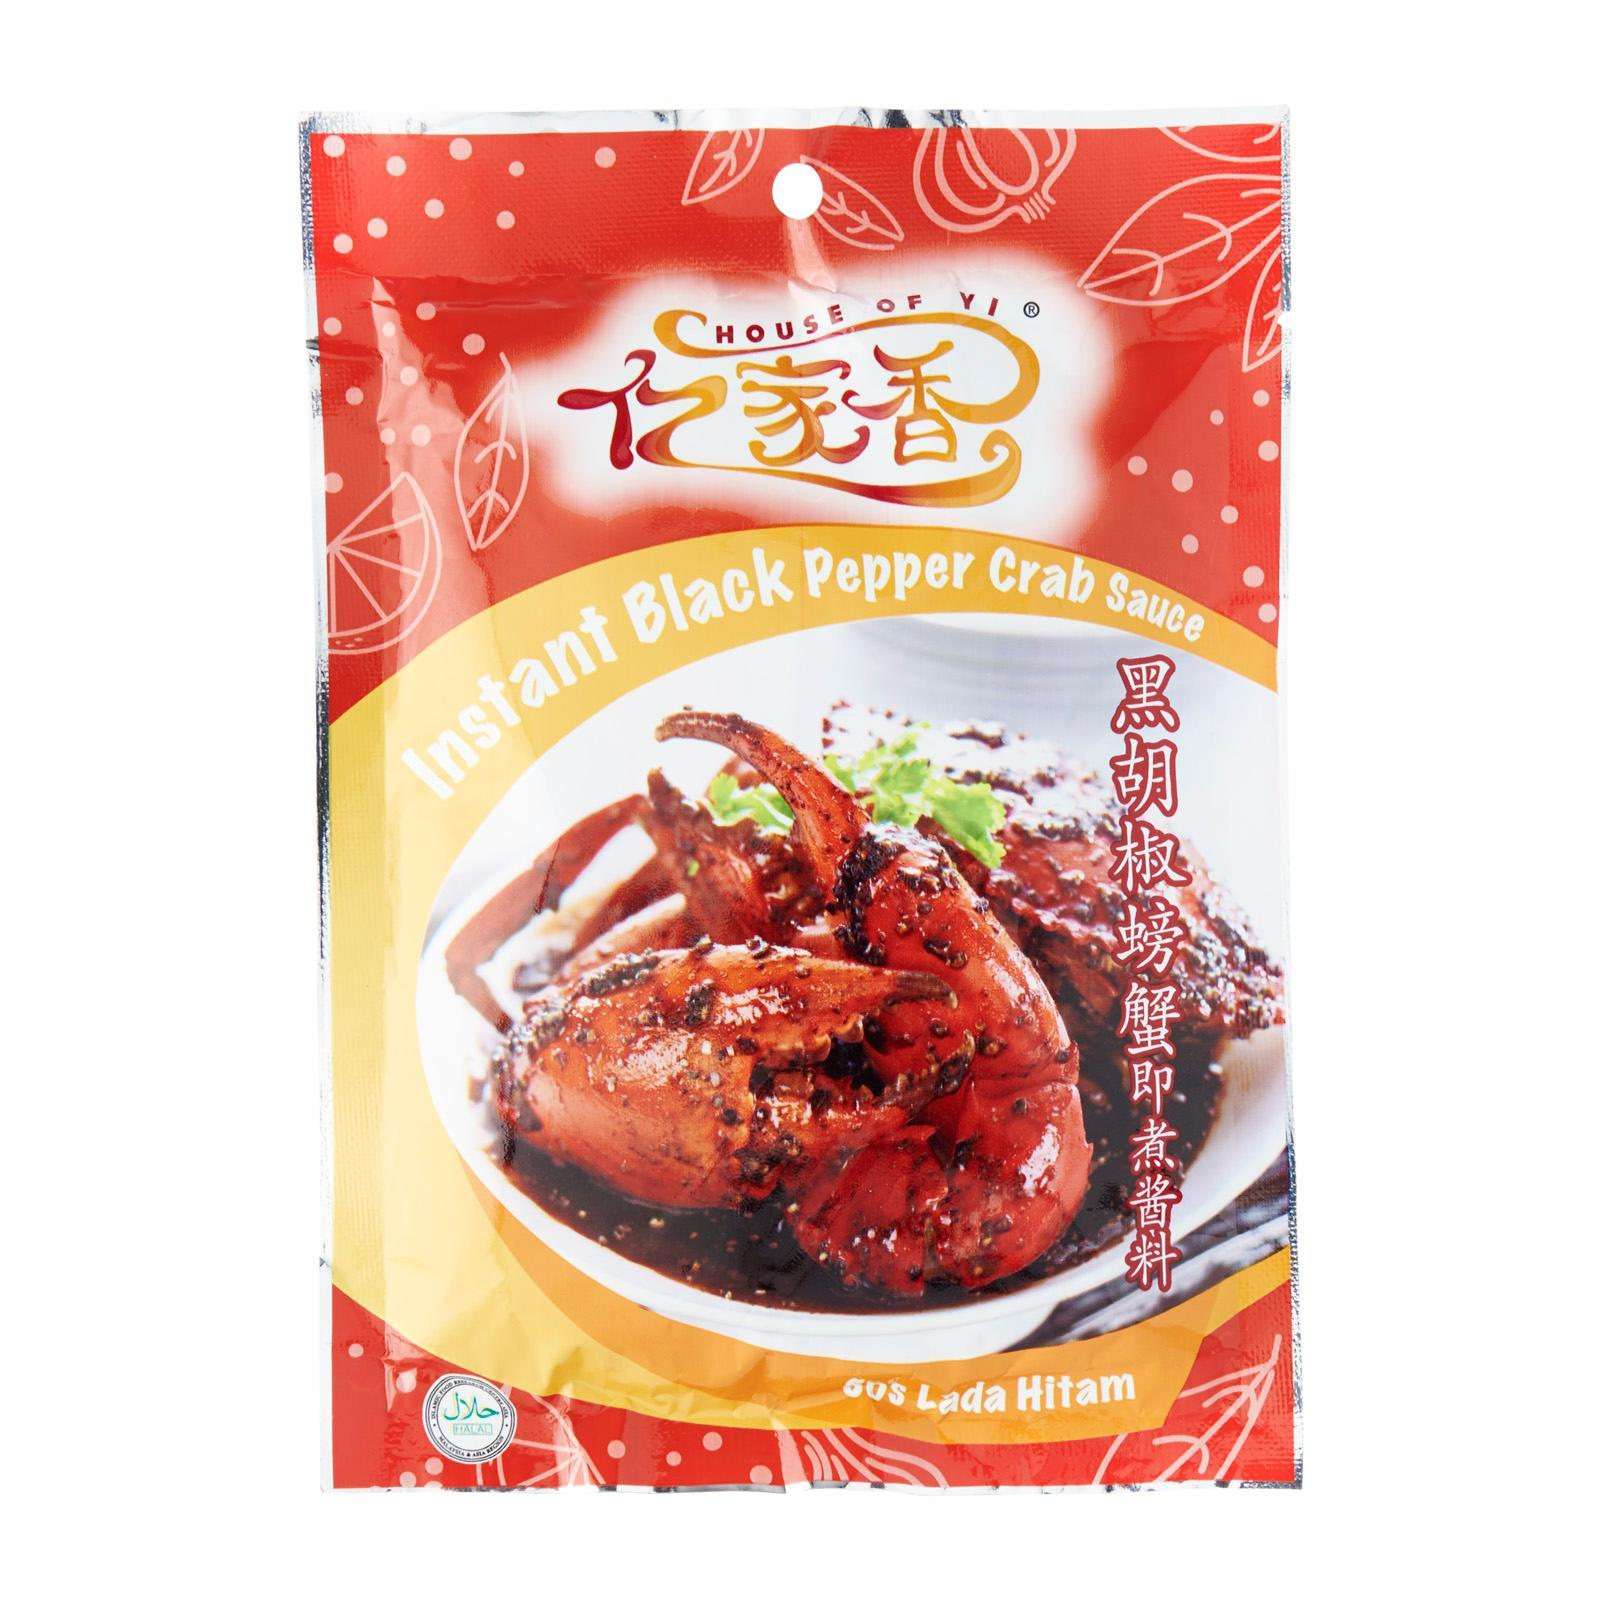 House Of Yi Instant Black Pepper Crab Sauce - By FOOD SERVICE